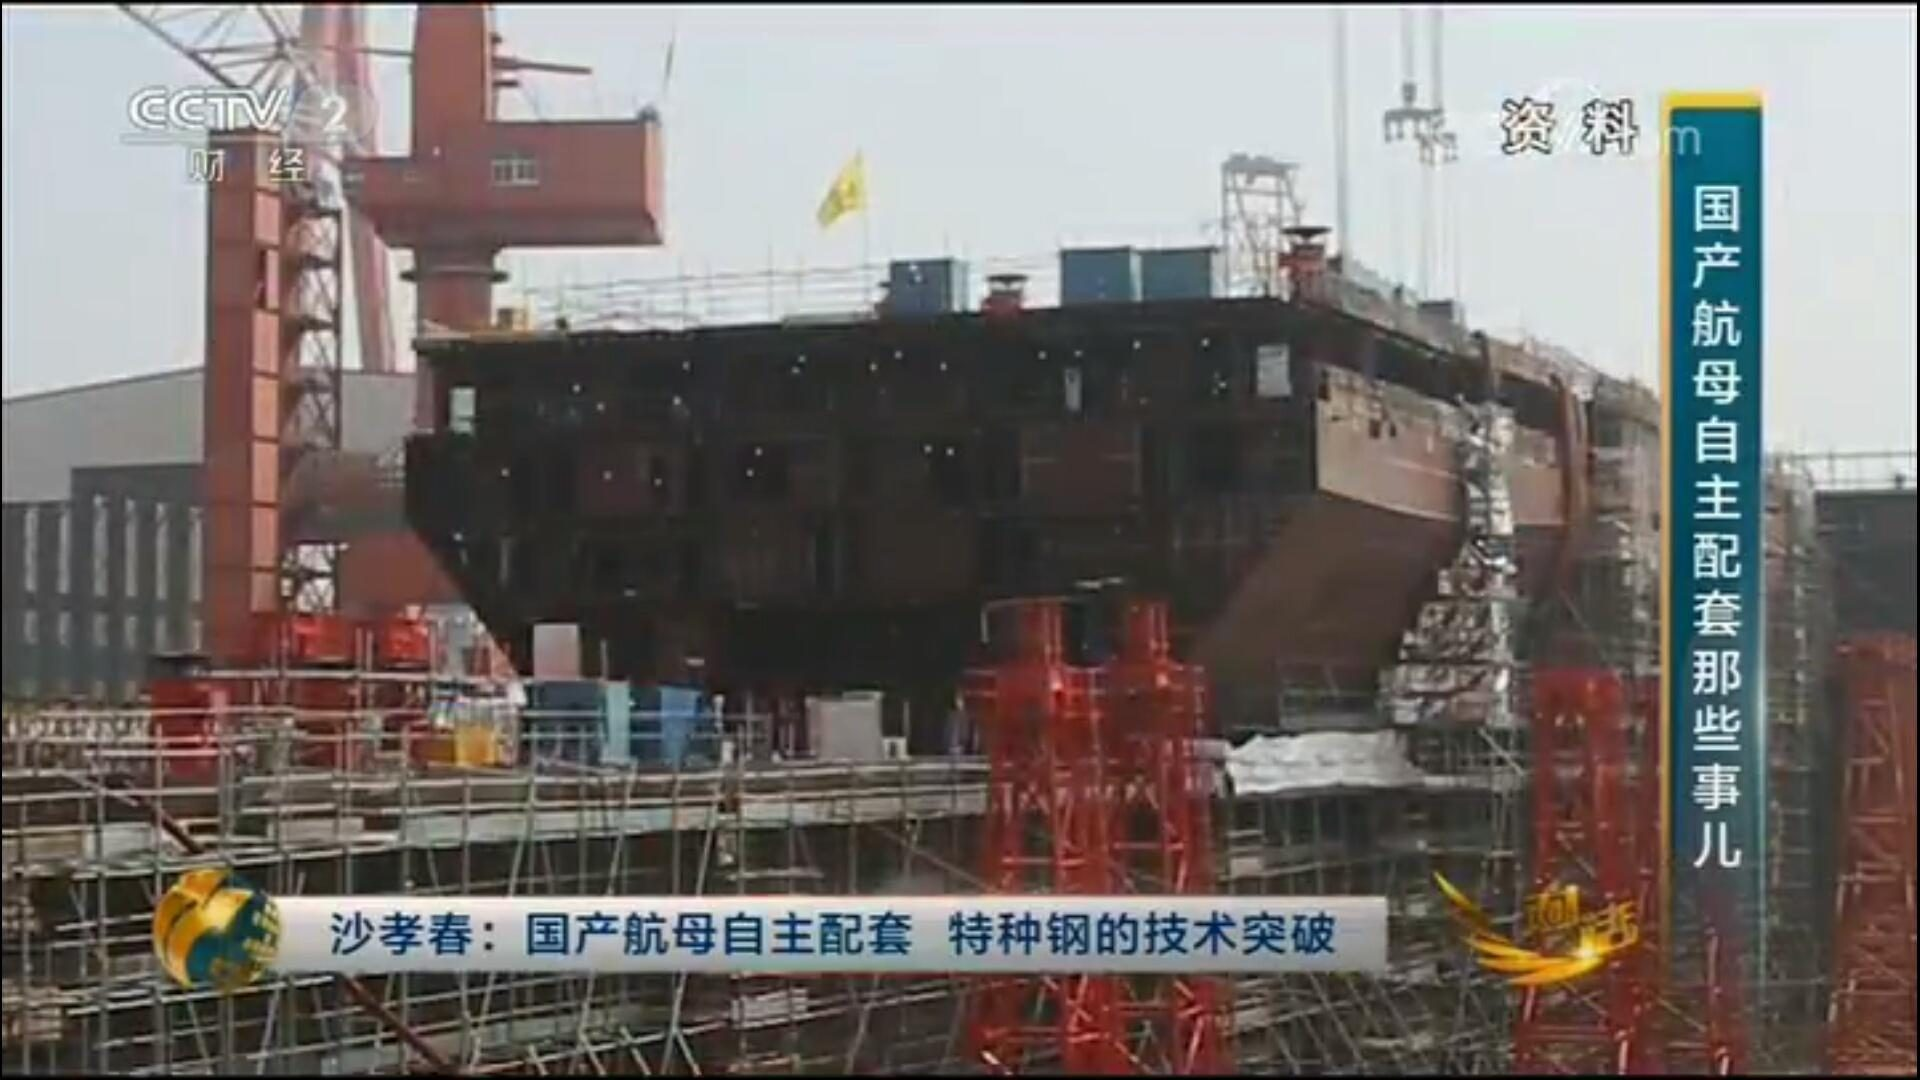 China On Aircraft Carrier Building Spree Starts Working Third Based American Models The Financial Express